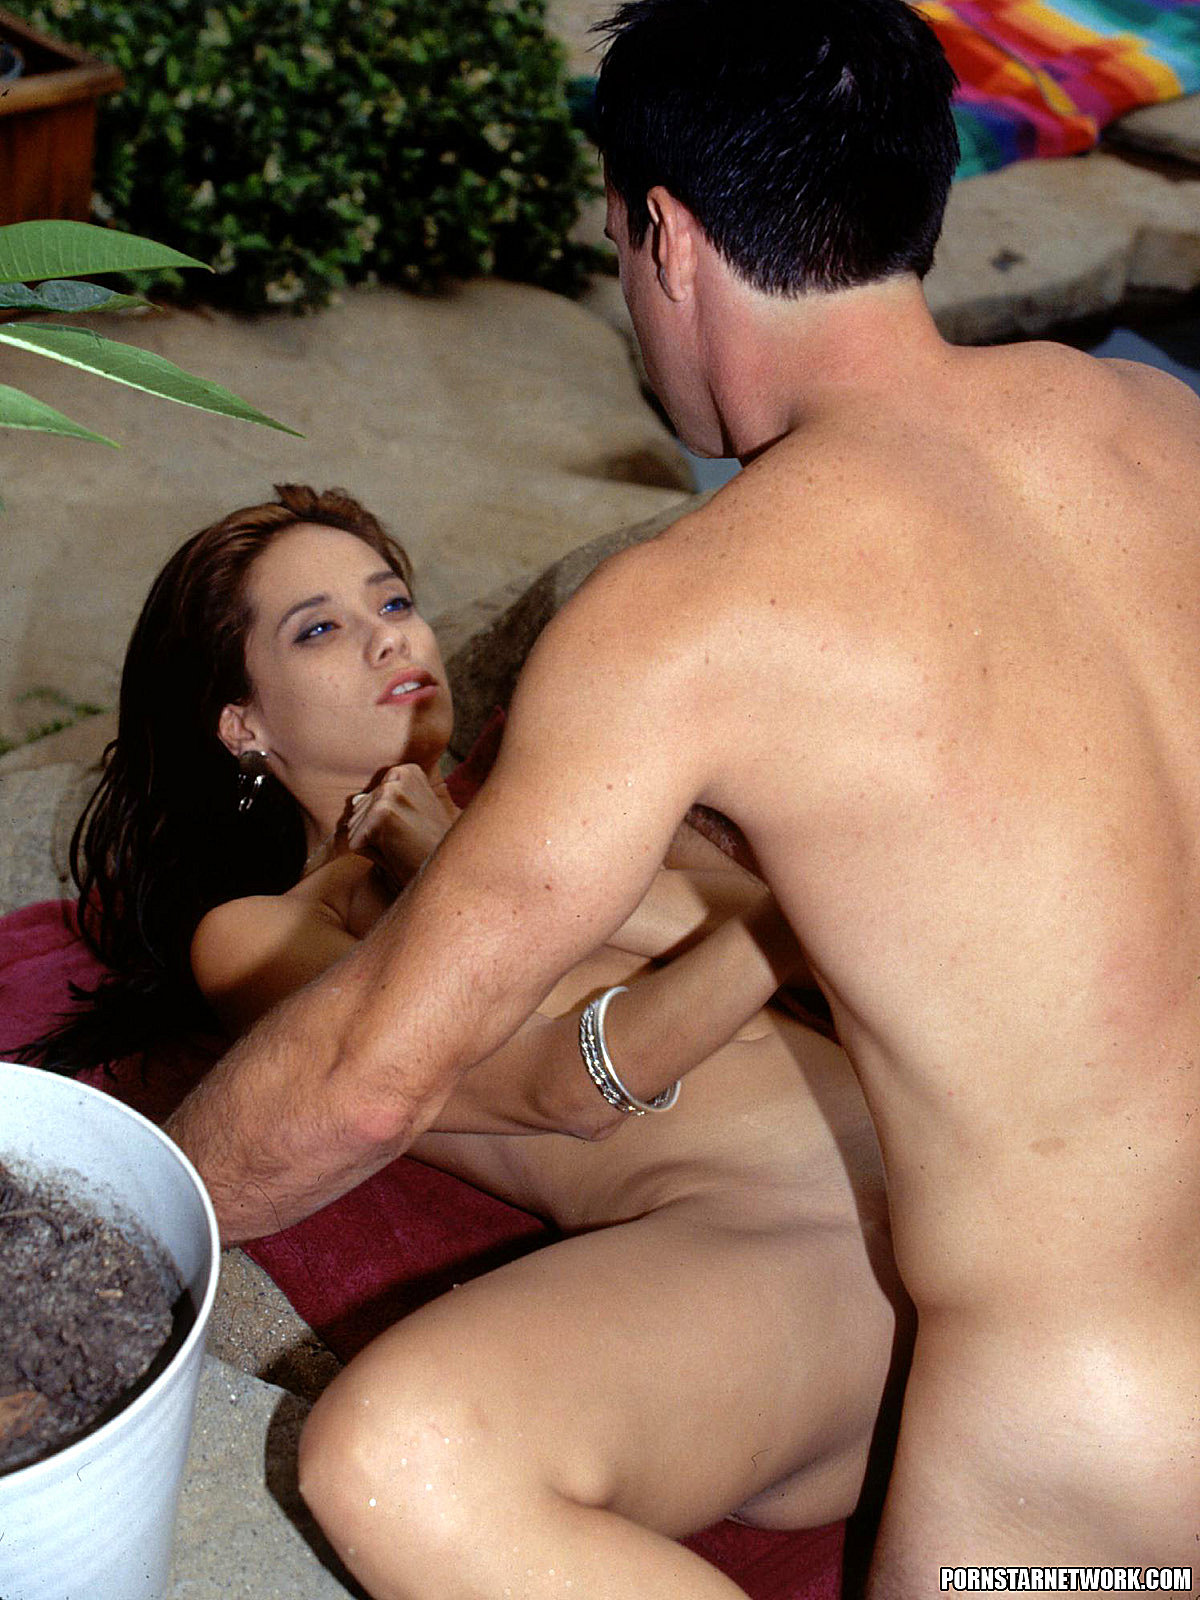 Alex dane takes peter north039s legendary cock and cumshot 1